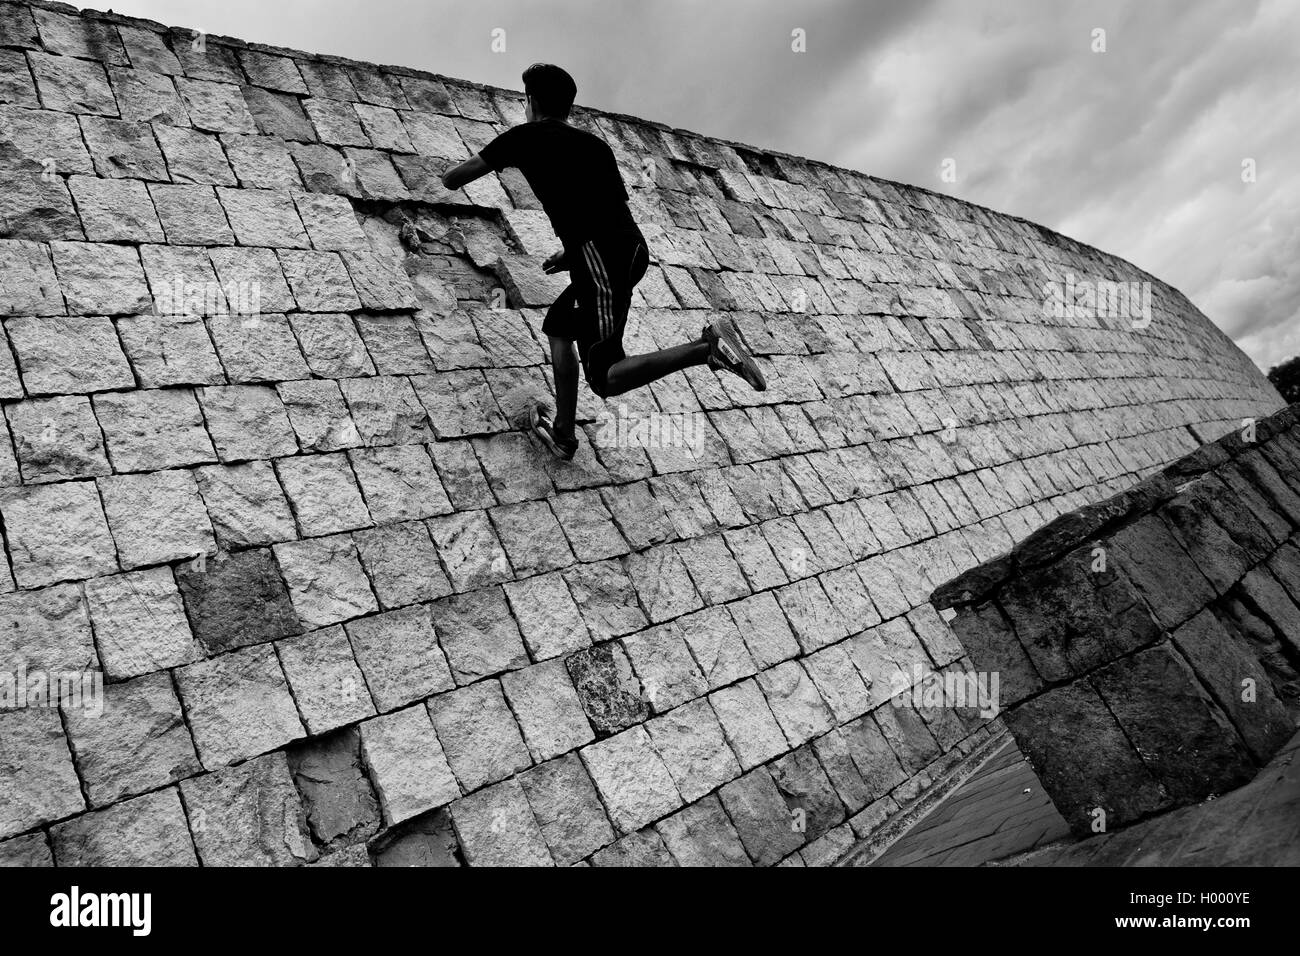 A Colombian parkour runner jumps on the wall during a free running training session of Tamashikaze team in Bogotá, Stock Photo